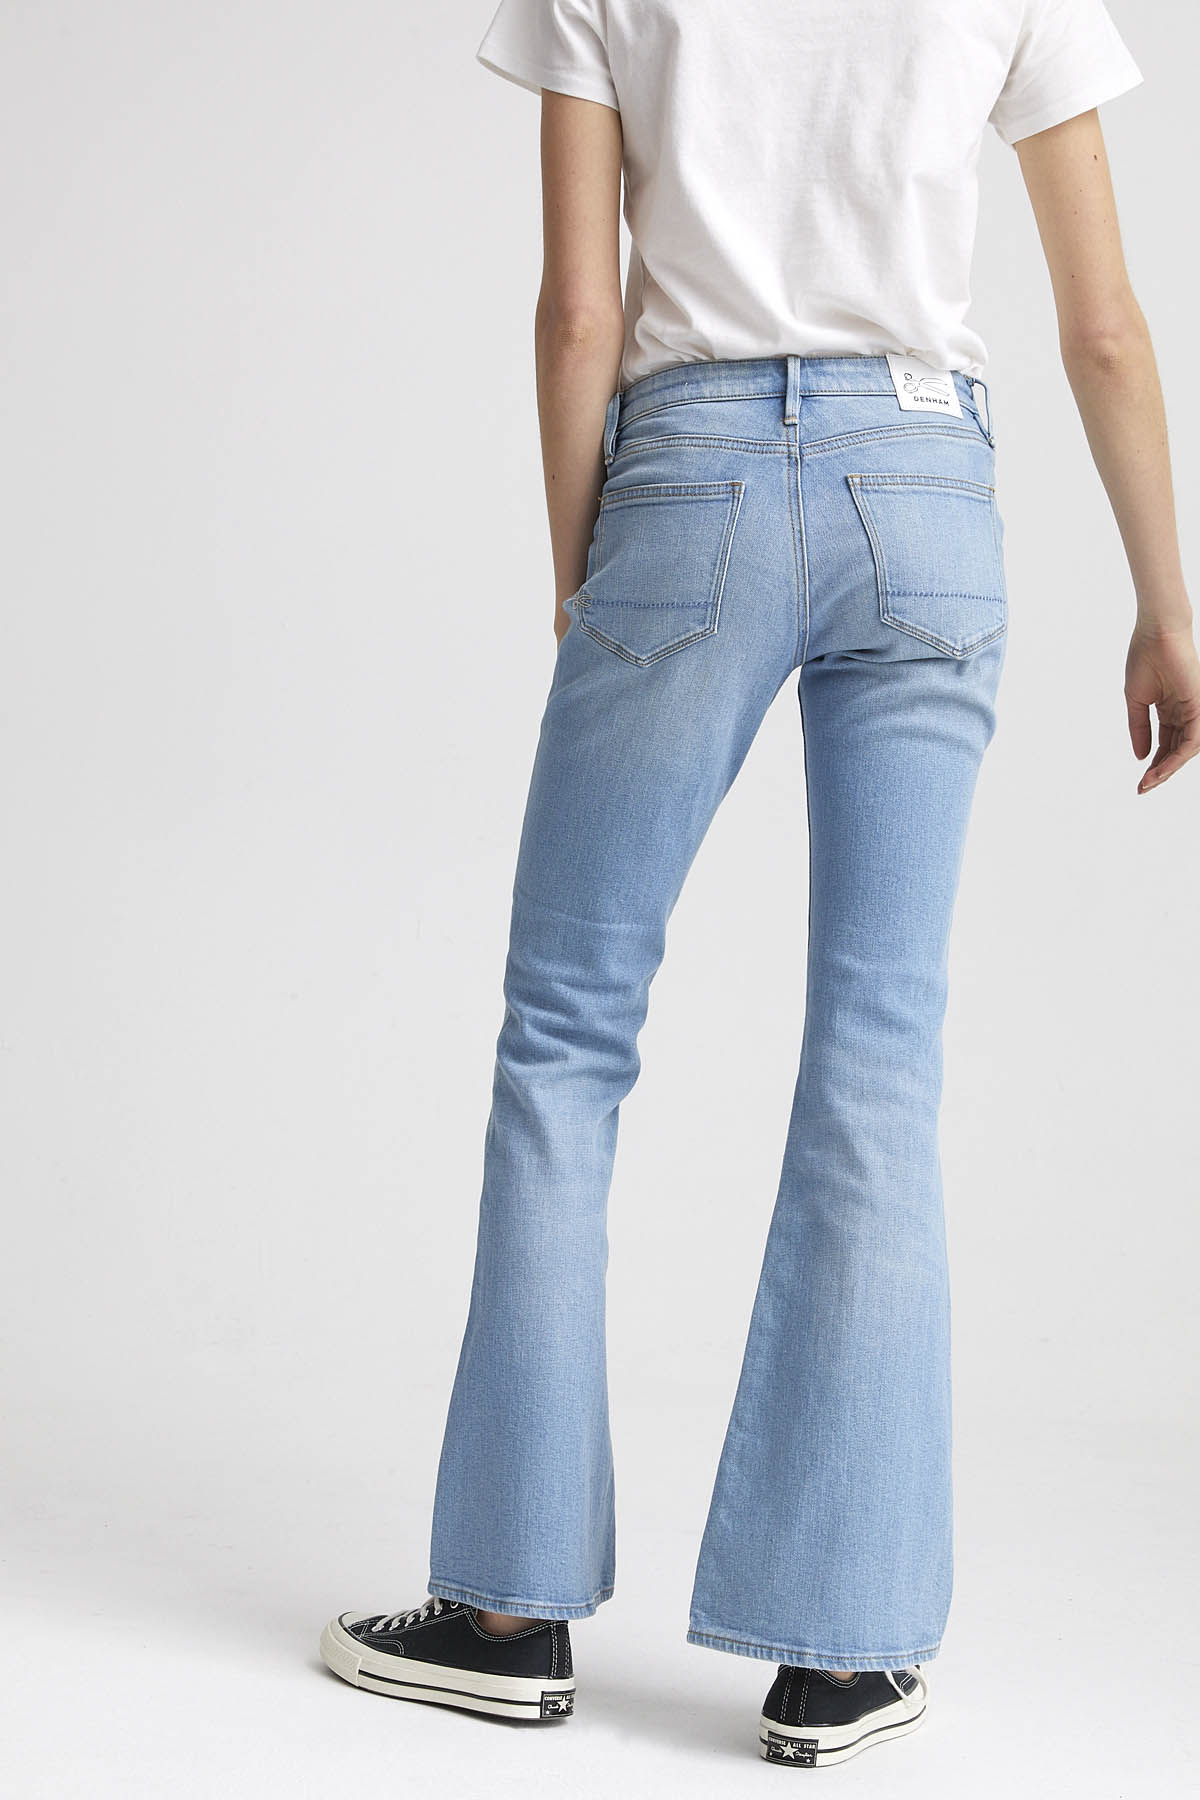 Farrah - Flared Fit Jeans - Detail